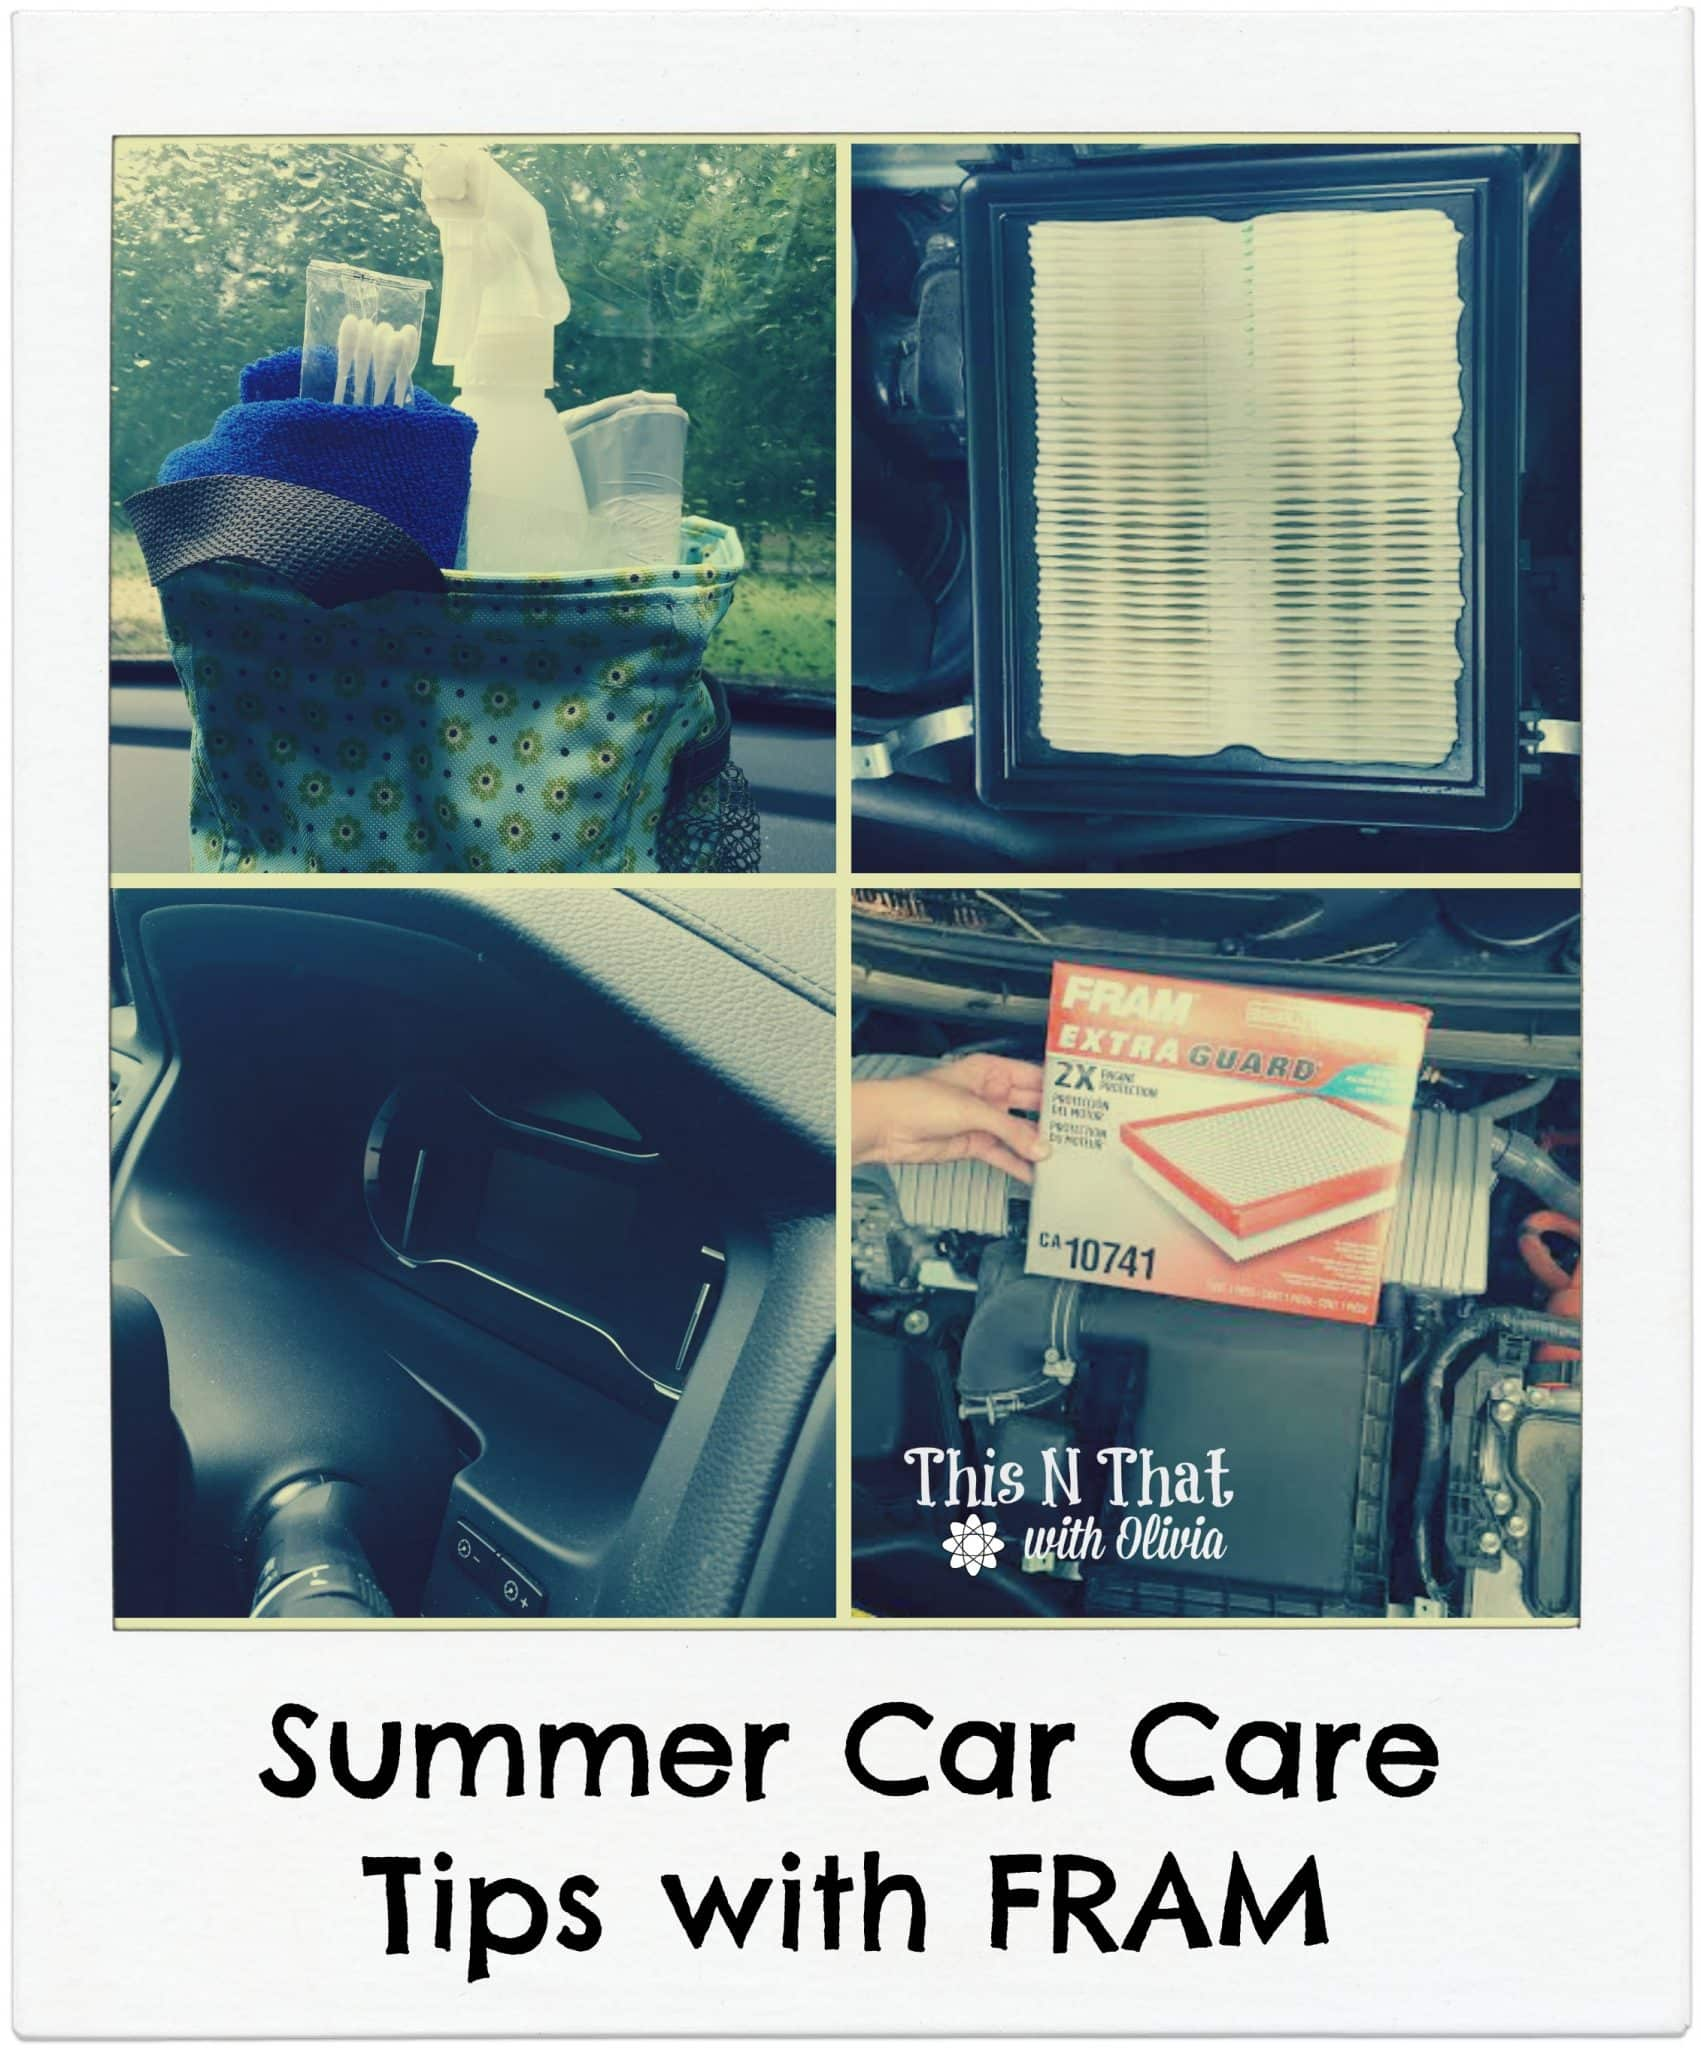 Summer Car Care Tips with FRAM #SummerCarCare #ad